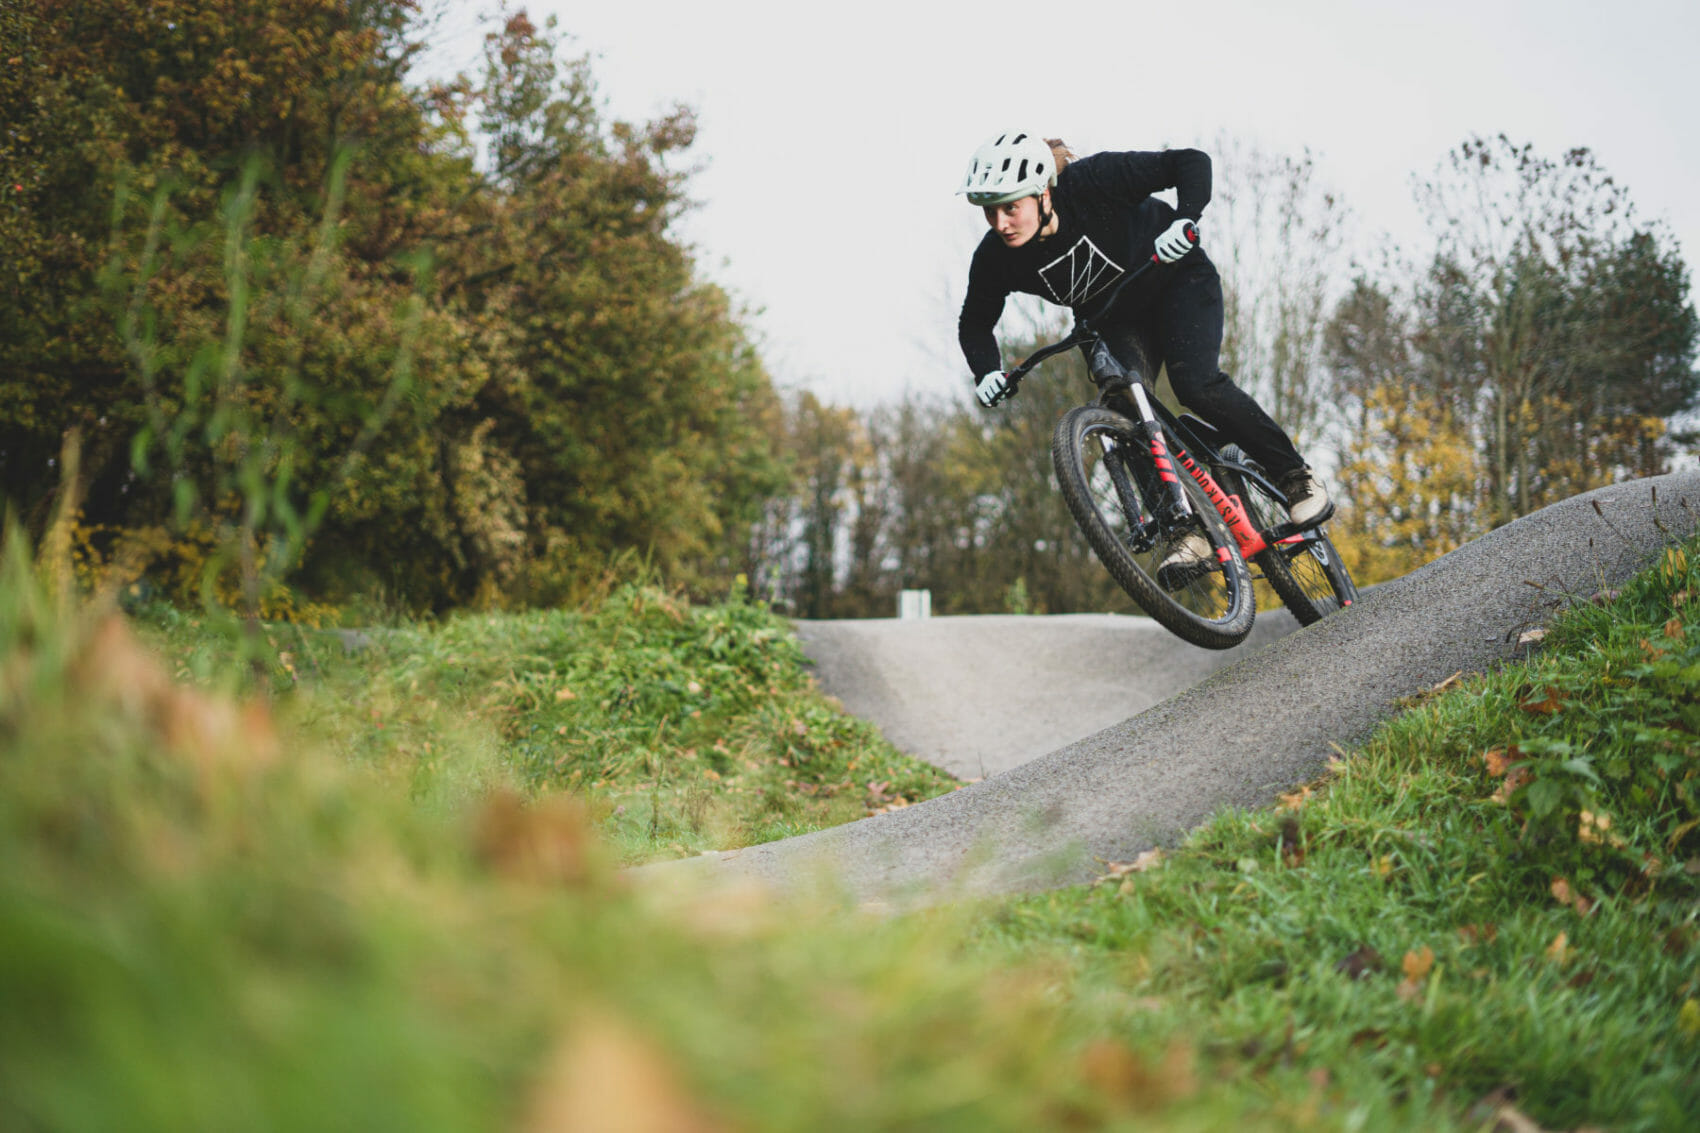 Changing Gears with Chloe Taylor